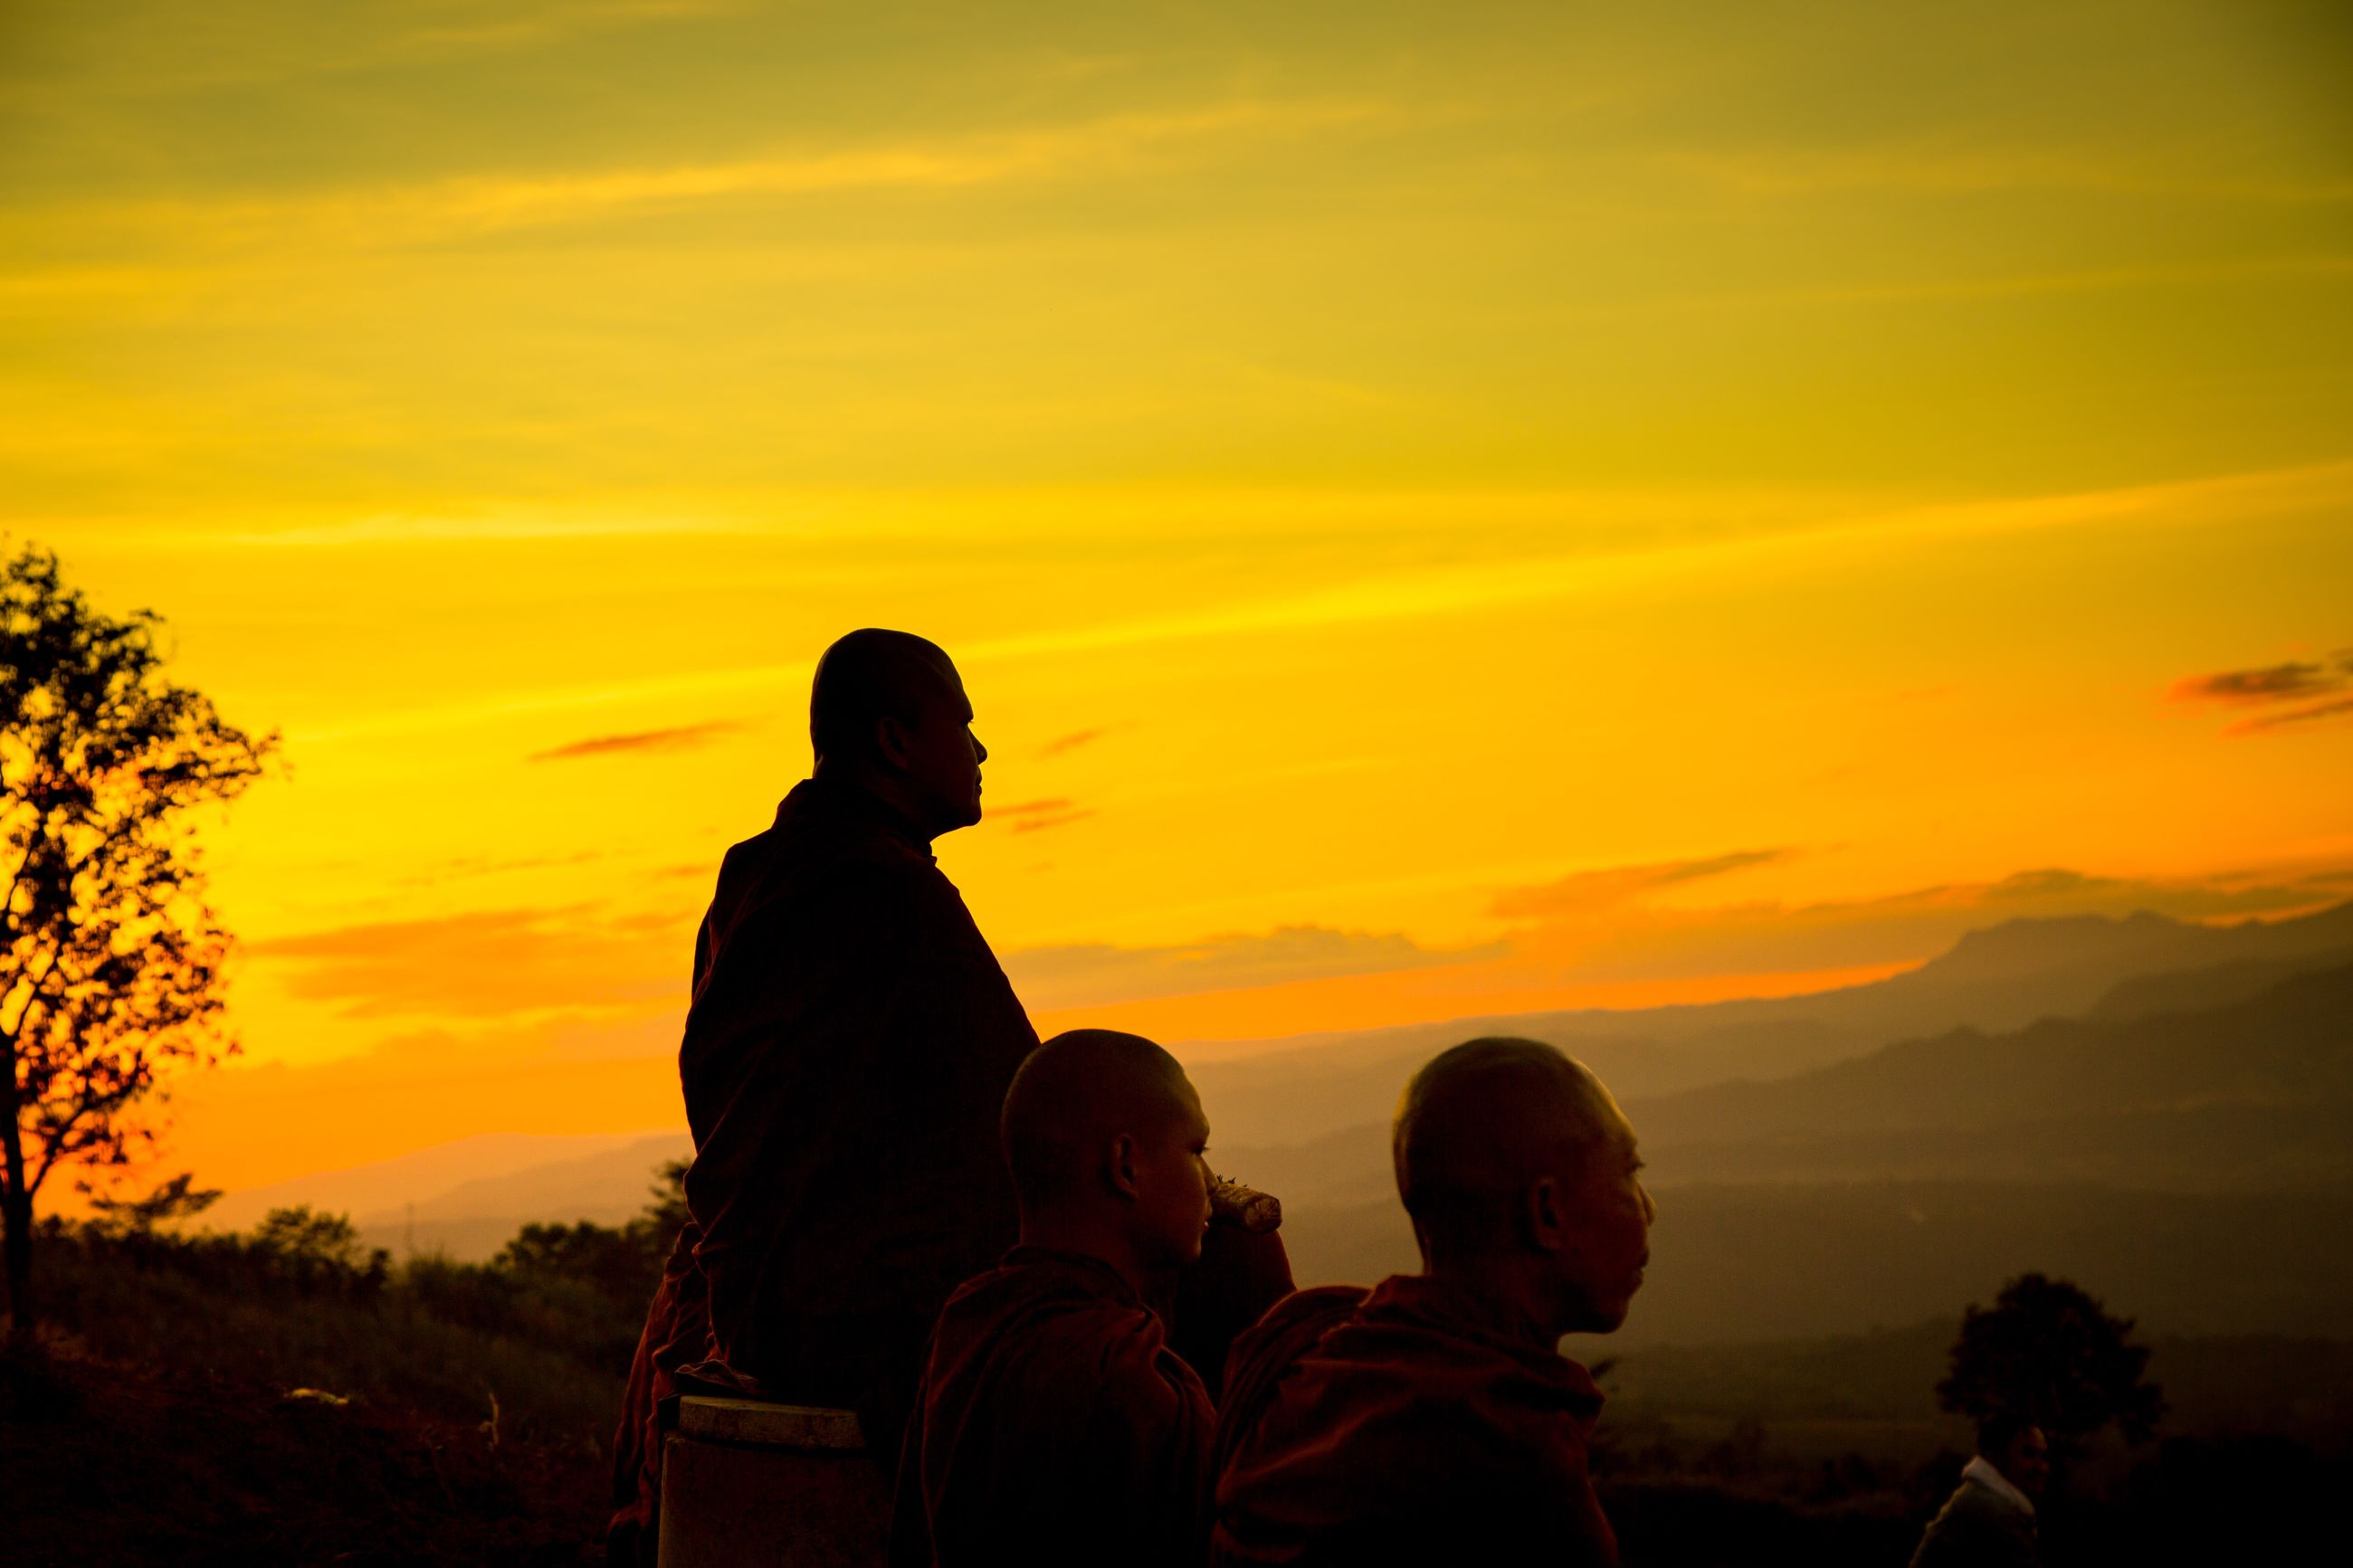 sunset, togetherness, orange color, real people, sky, nature, love, silhouette, leisure activity, three people, beauty in nature, lifestyles, bonding, men, outdoors, scenics, friendship, tranquility, women, people